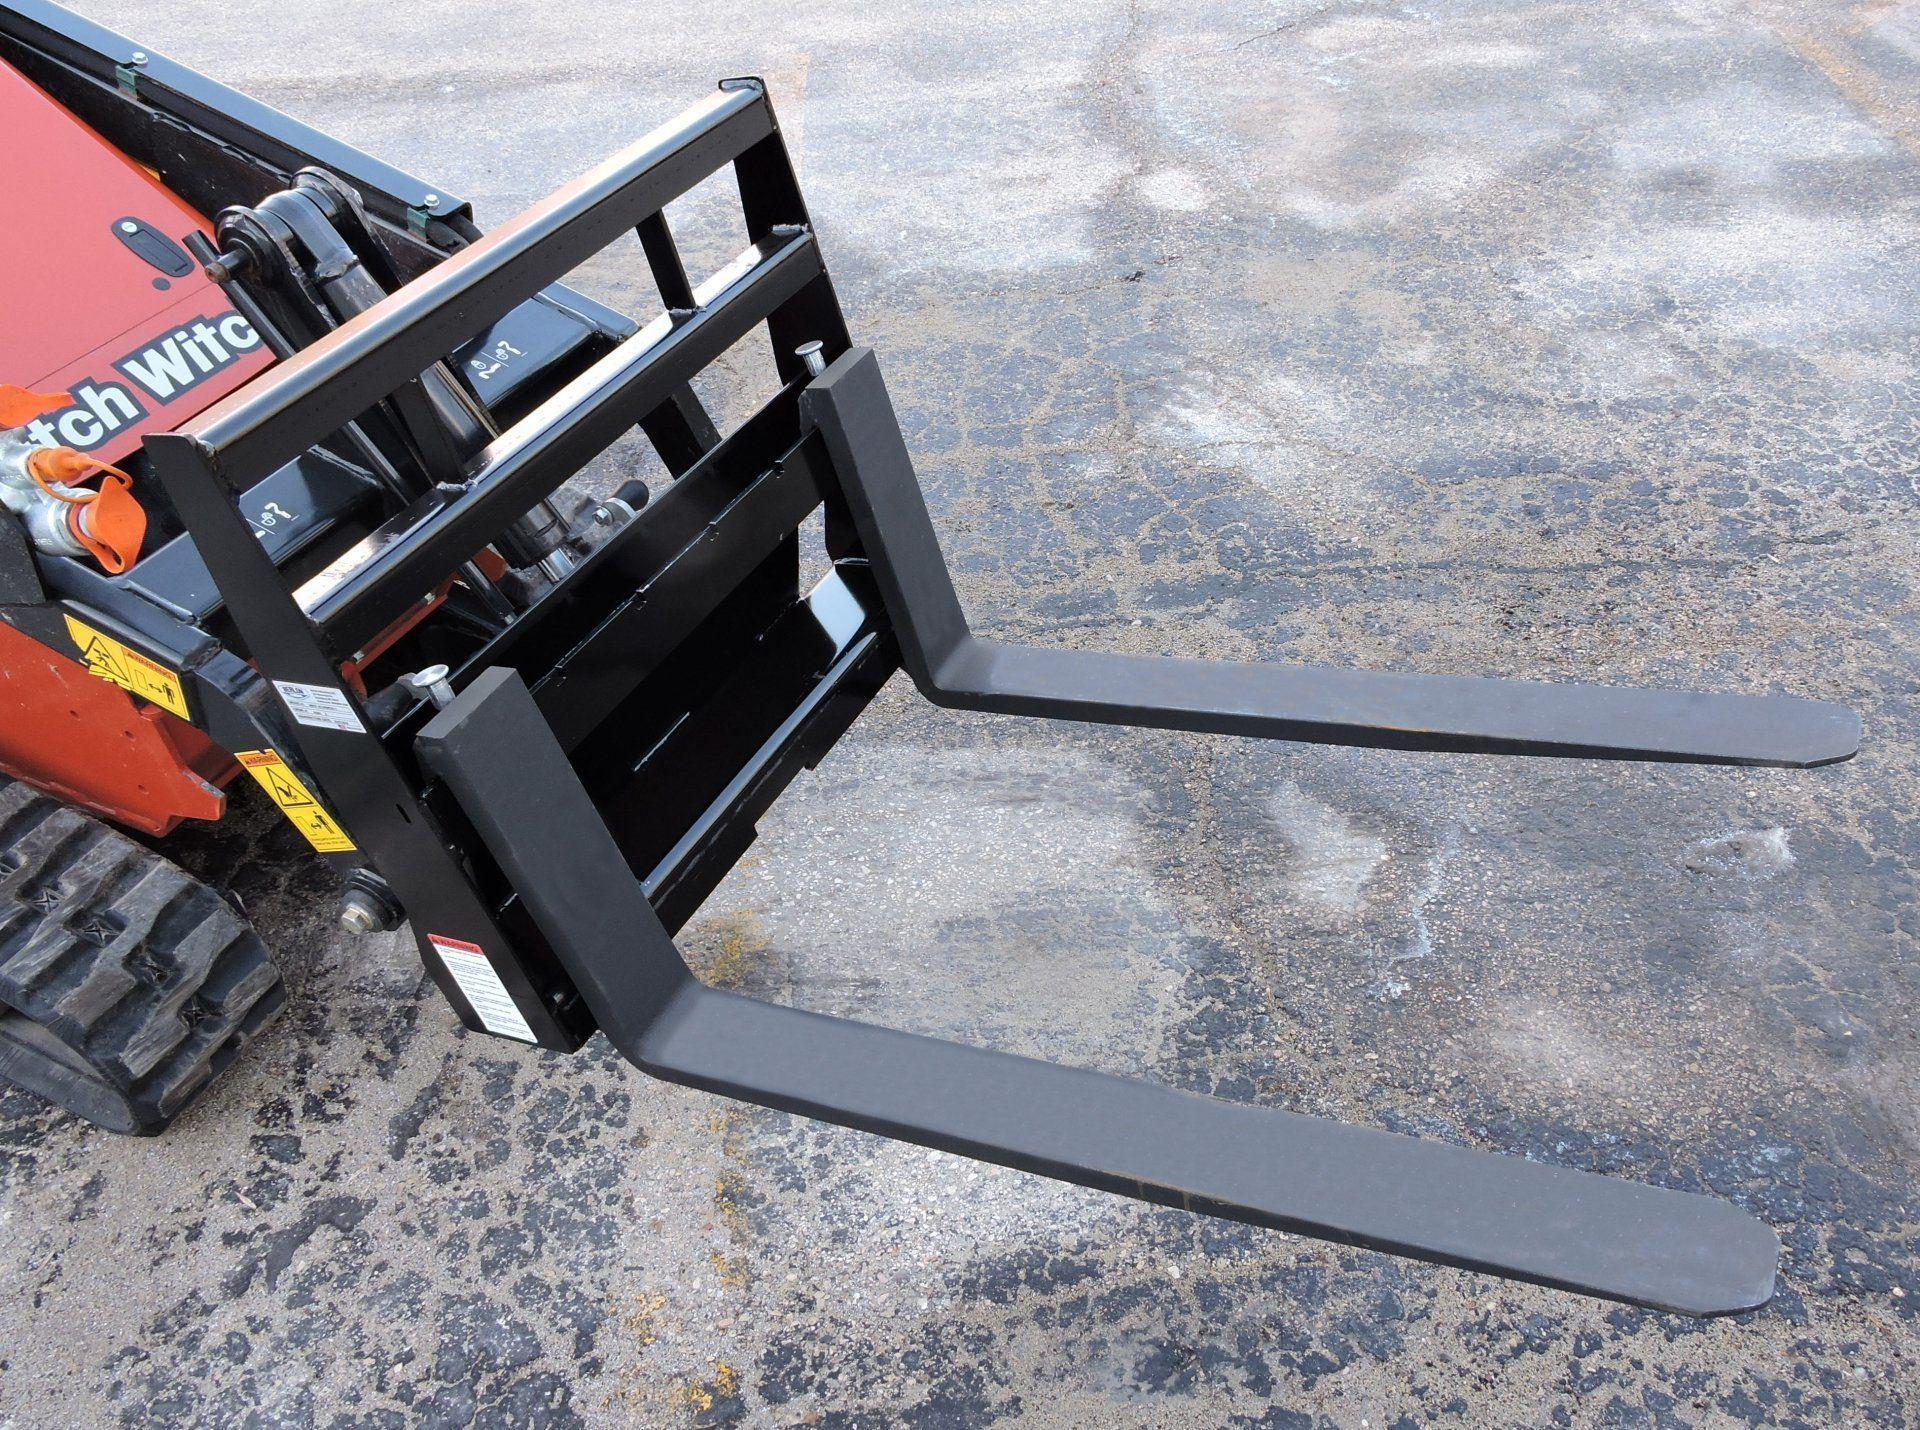 Mini Pallet Forks - Berlon Industries Mini Pallet Forks Berlon Industries 36 Inch